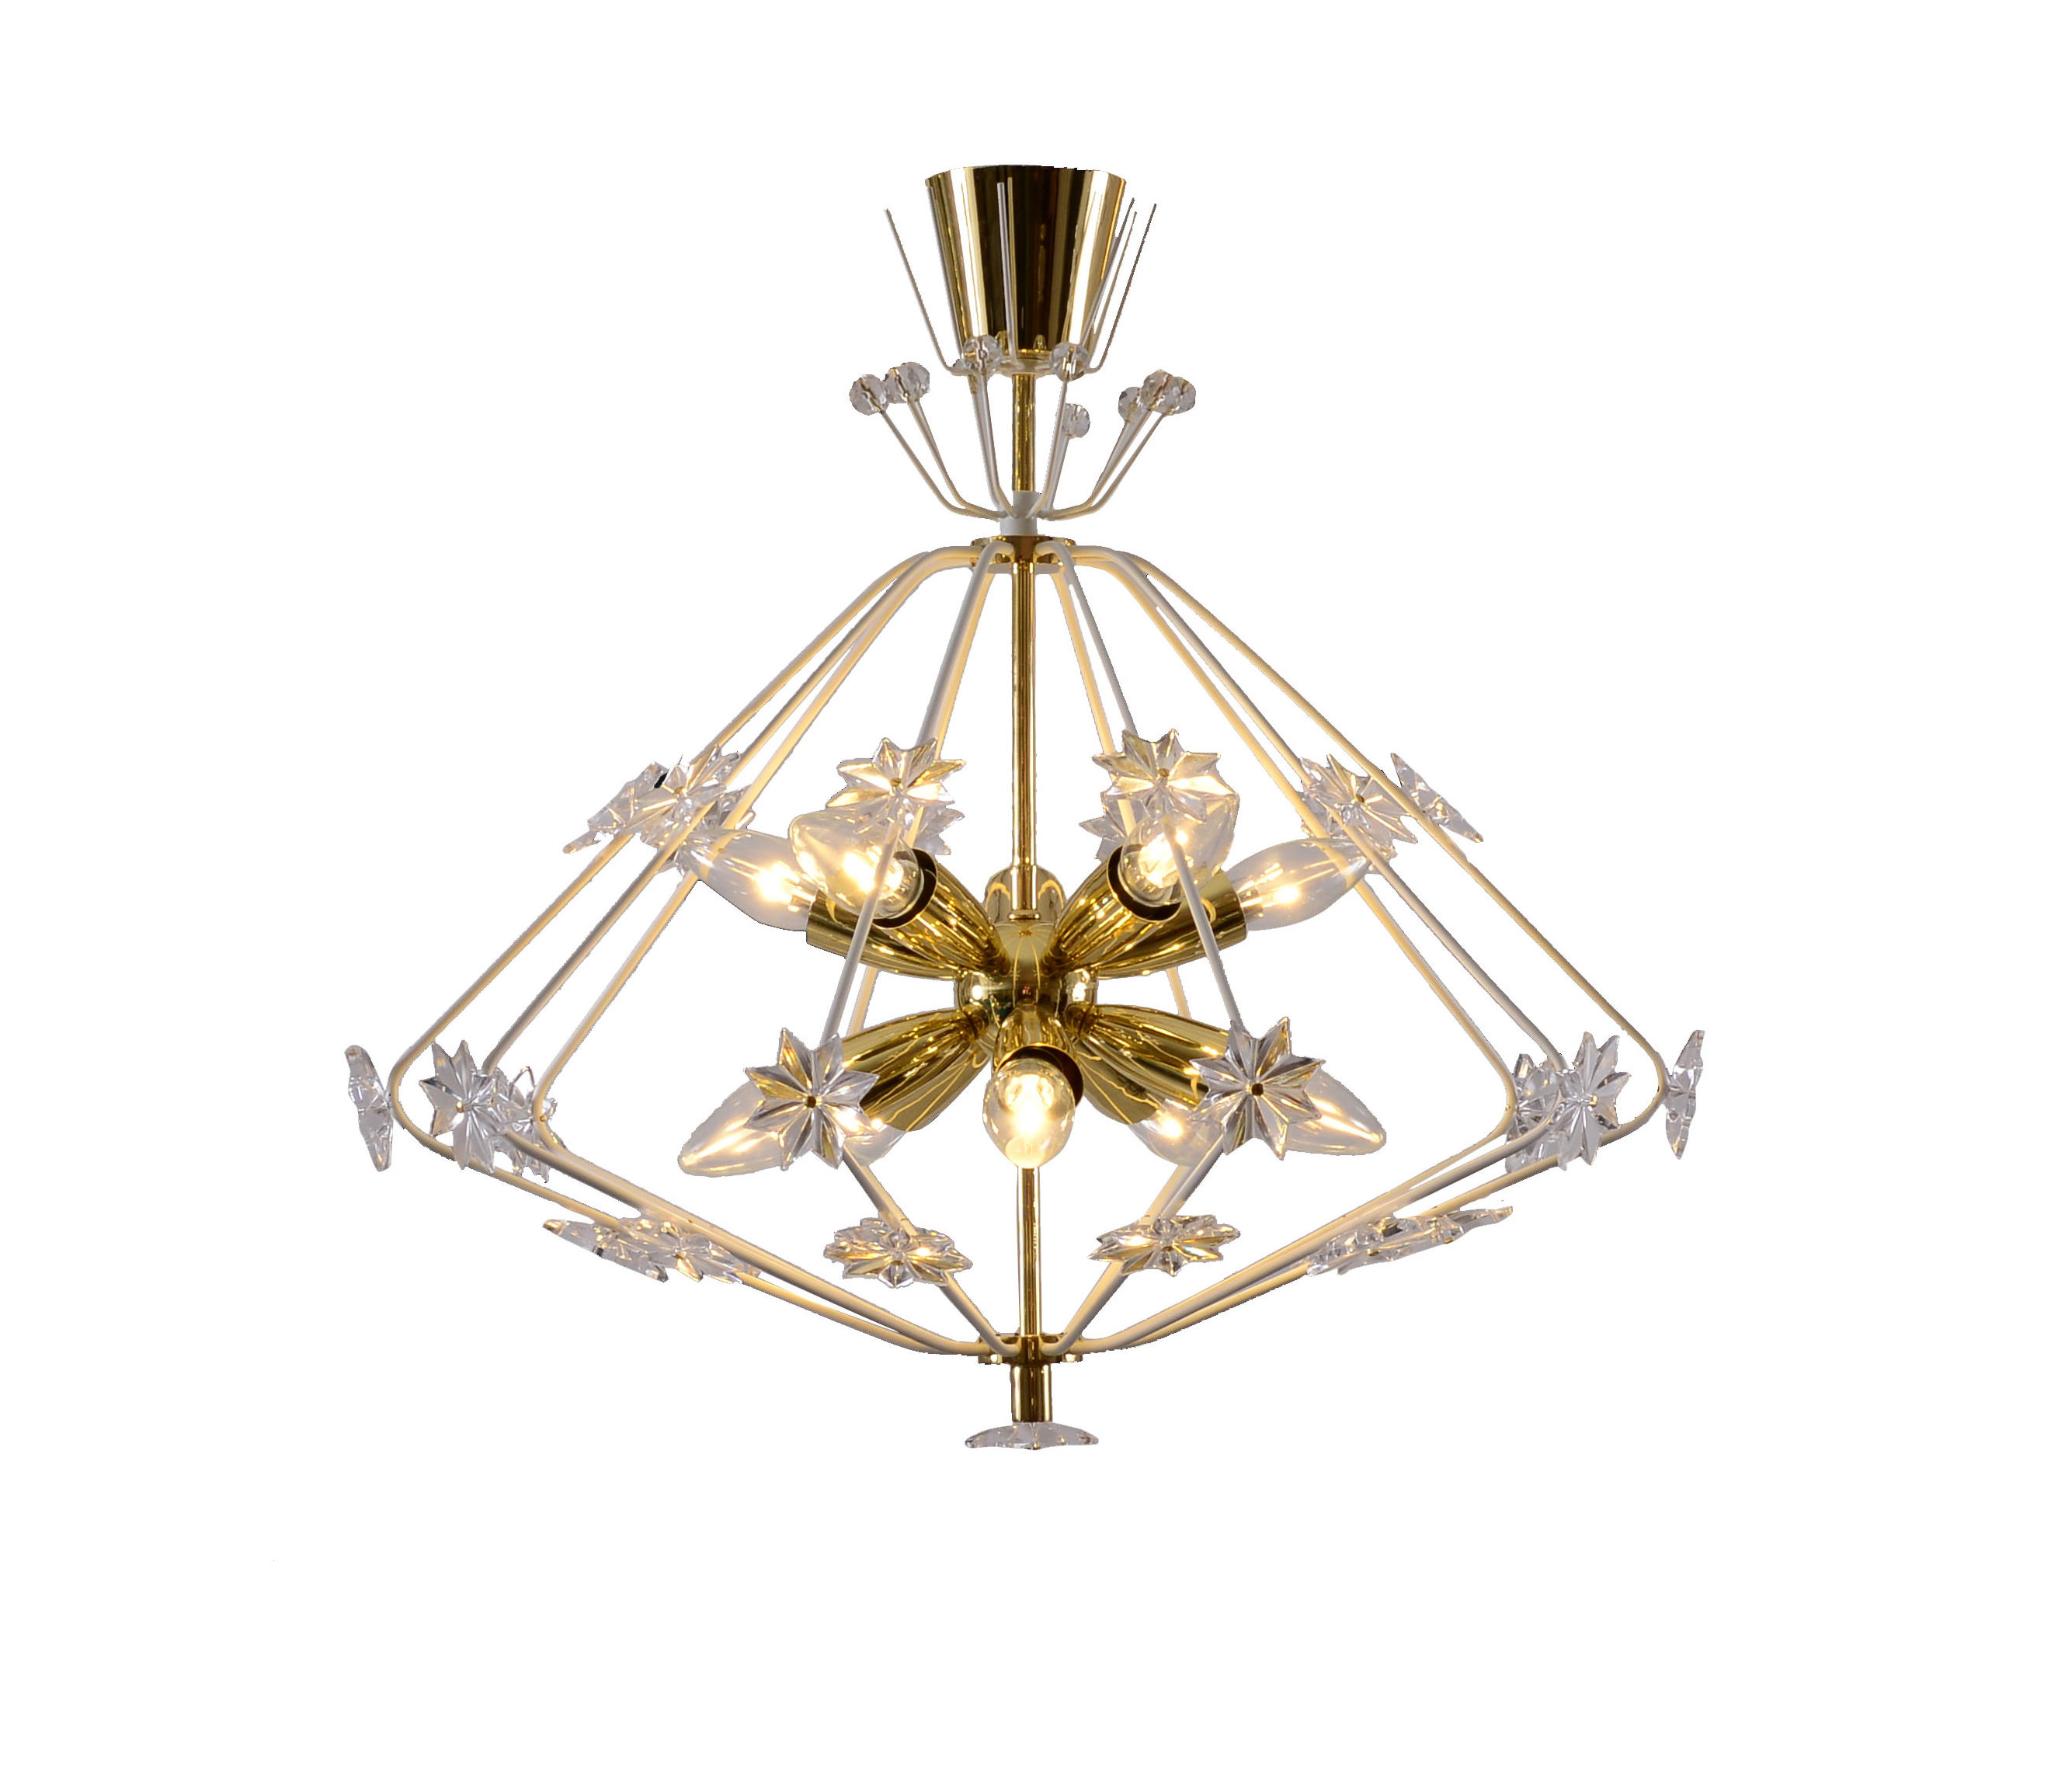 Snowflake chandelier general lighting from woka architonic snowflake chandelier by woka general lighting mozeypictures Choice Image